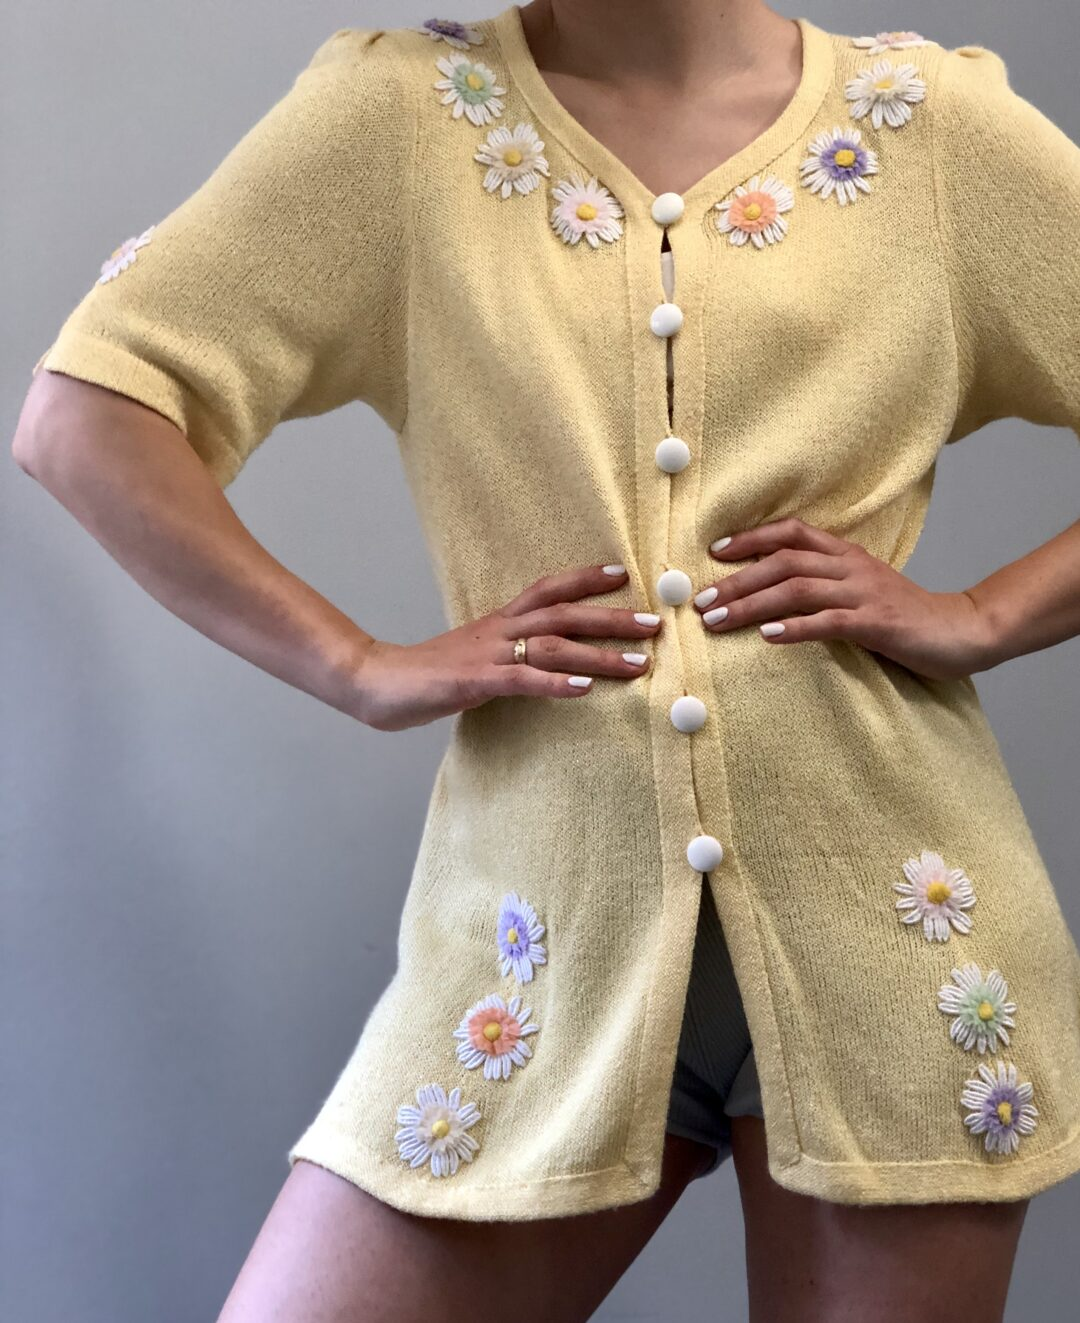 Vintage Collect23 daisy jacket